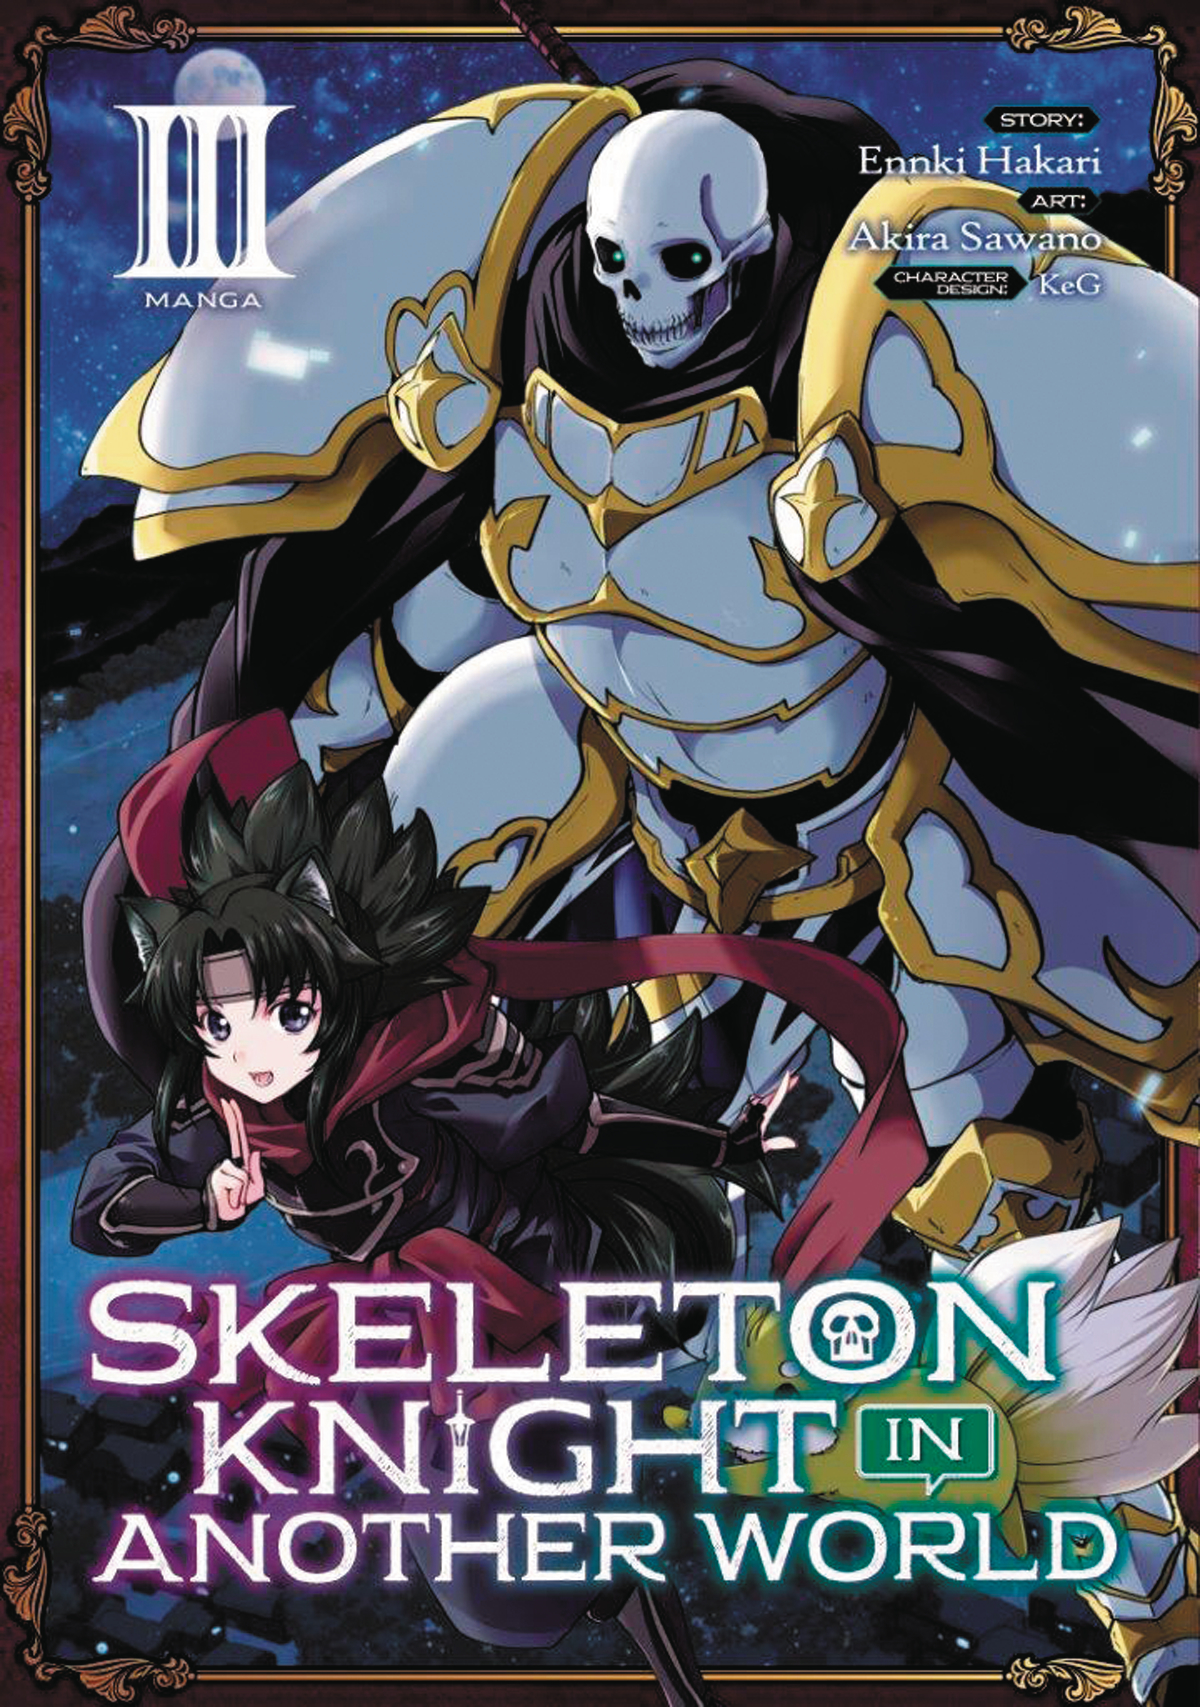 SKELETON KNIGHT IN ANOTHER WORLD GN VOL 03